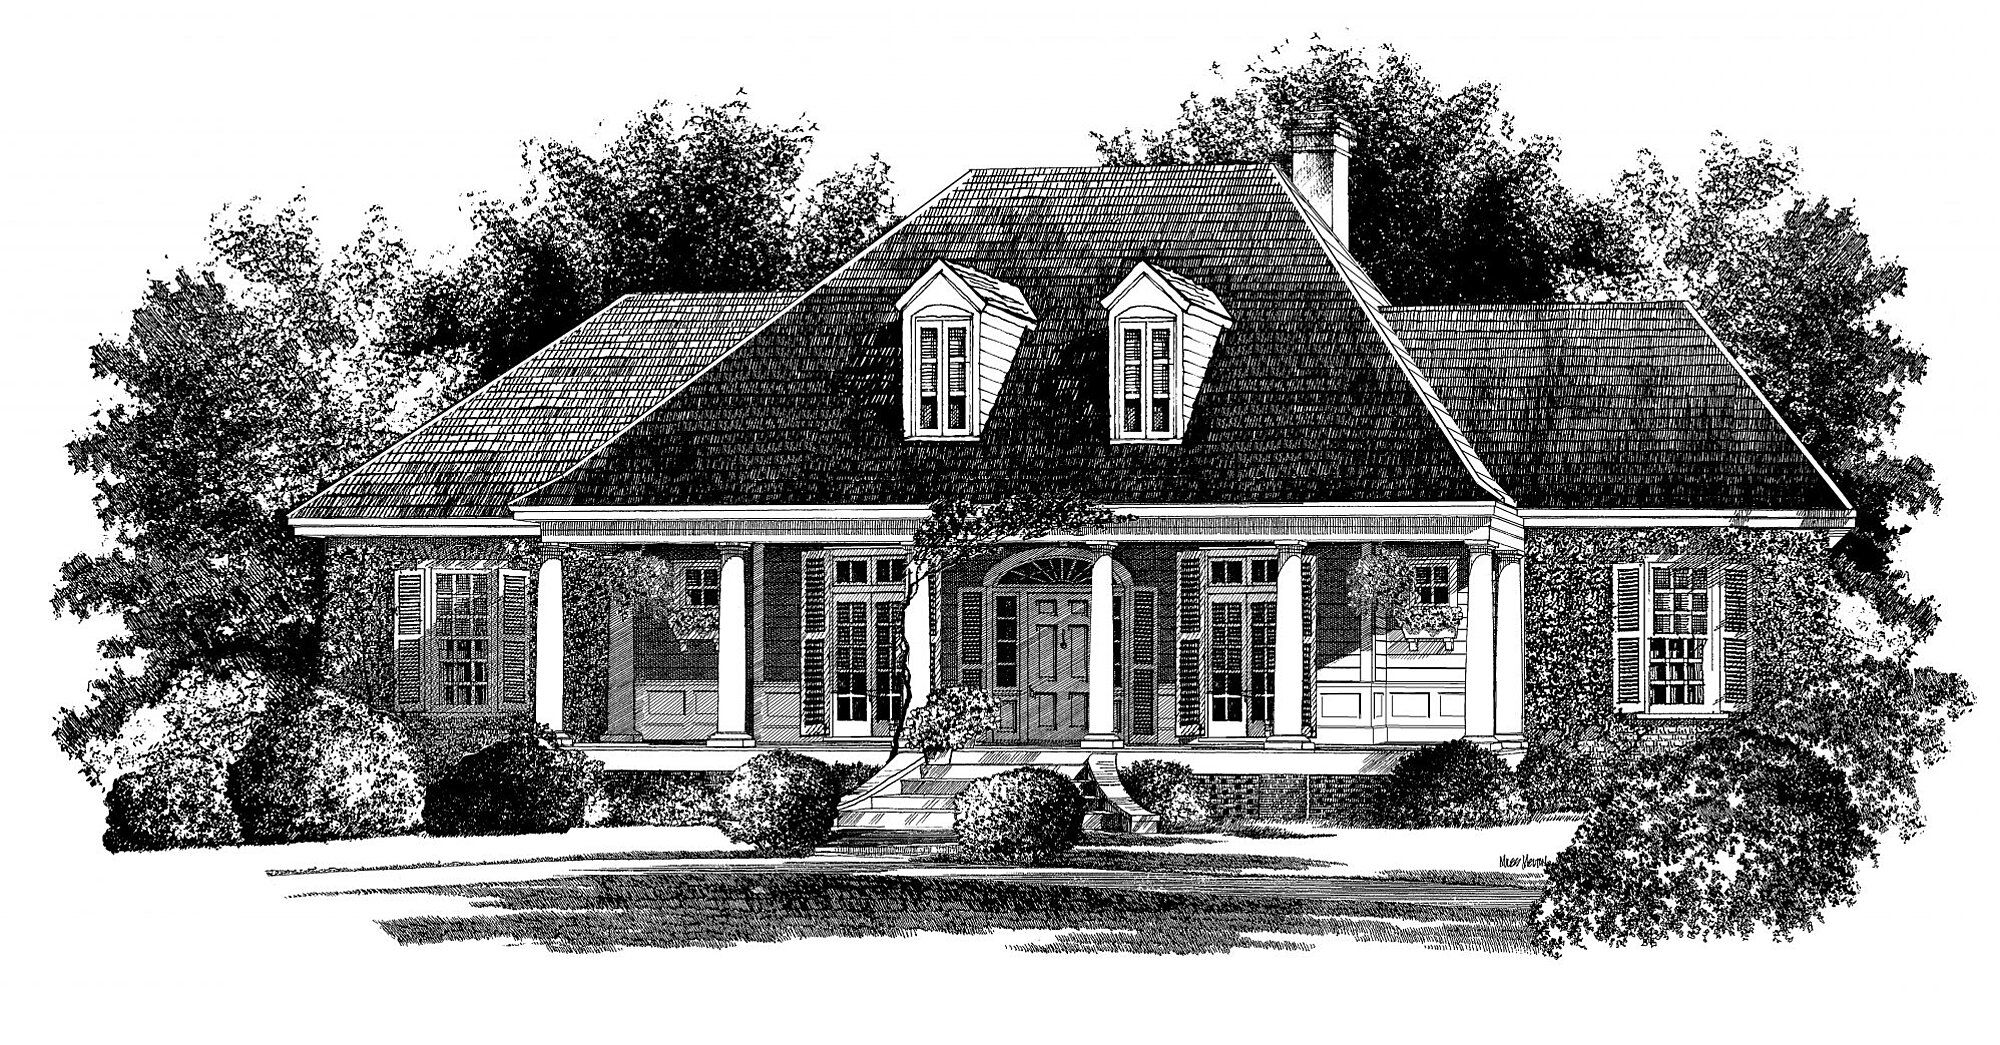 French Country House Plans That Bring All The Charm French Country House French Country House Plans Country House Plans